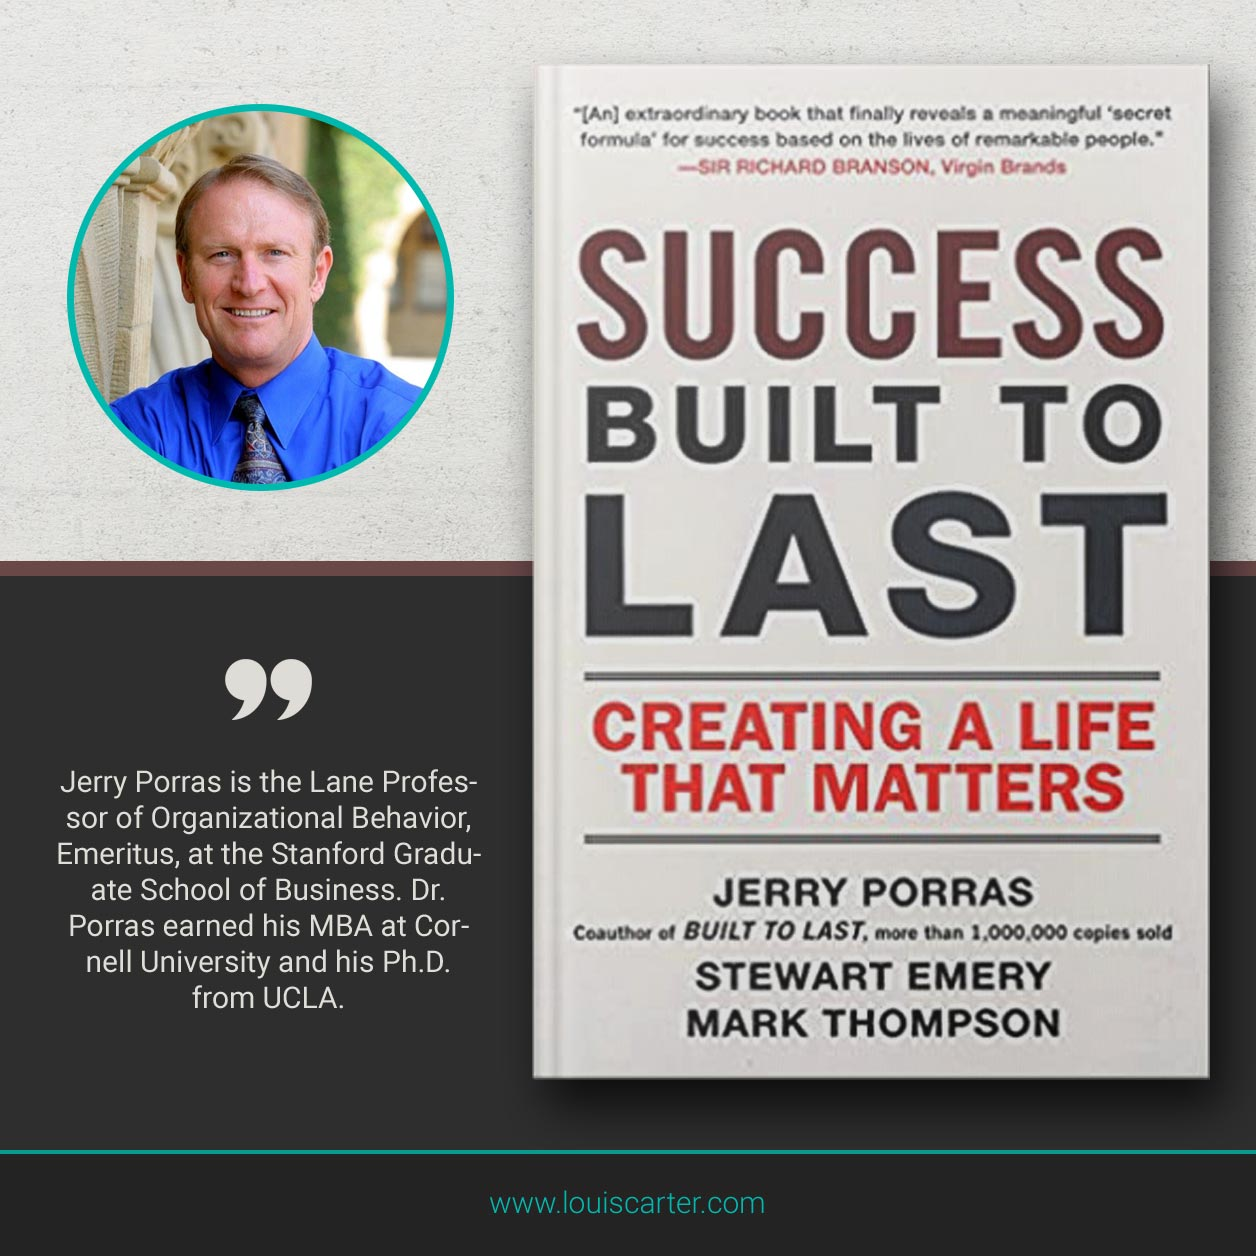 Picture of best books on leadership Success Built to Last by Jerry Porras, Stewart Emery, and Mark Thomson.